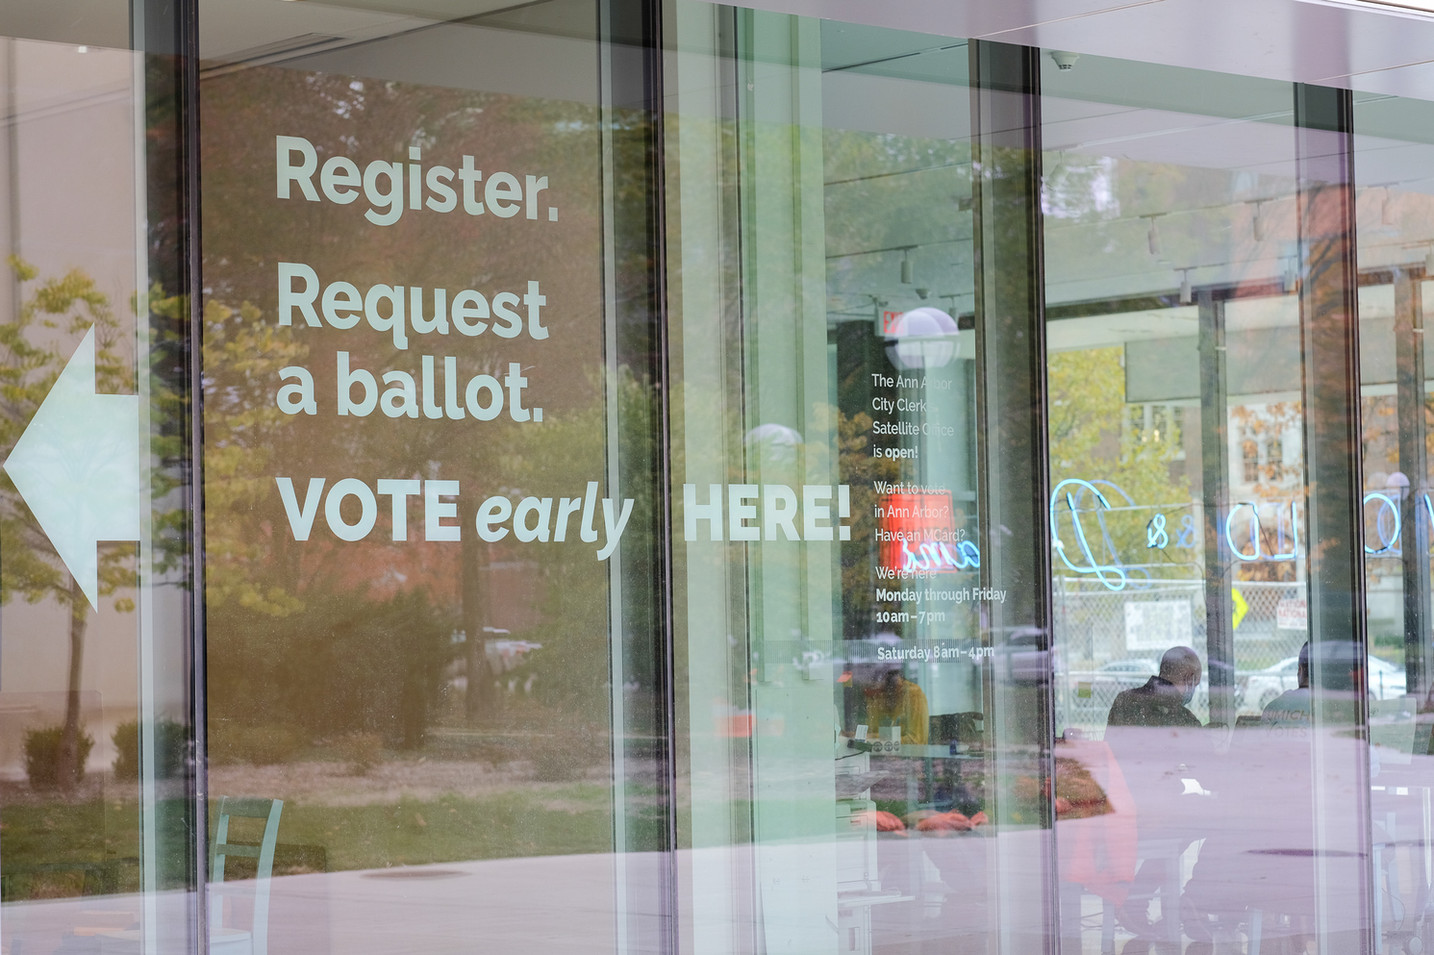 Register. Request a ballot. VOTE early HERE! was our branding identity for the project. This language, used here in window graphics, both publicized the office and made Michigan's new streamlined voting process explicit.